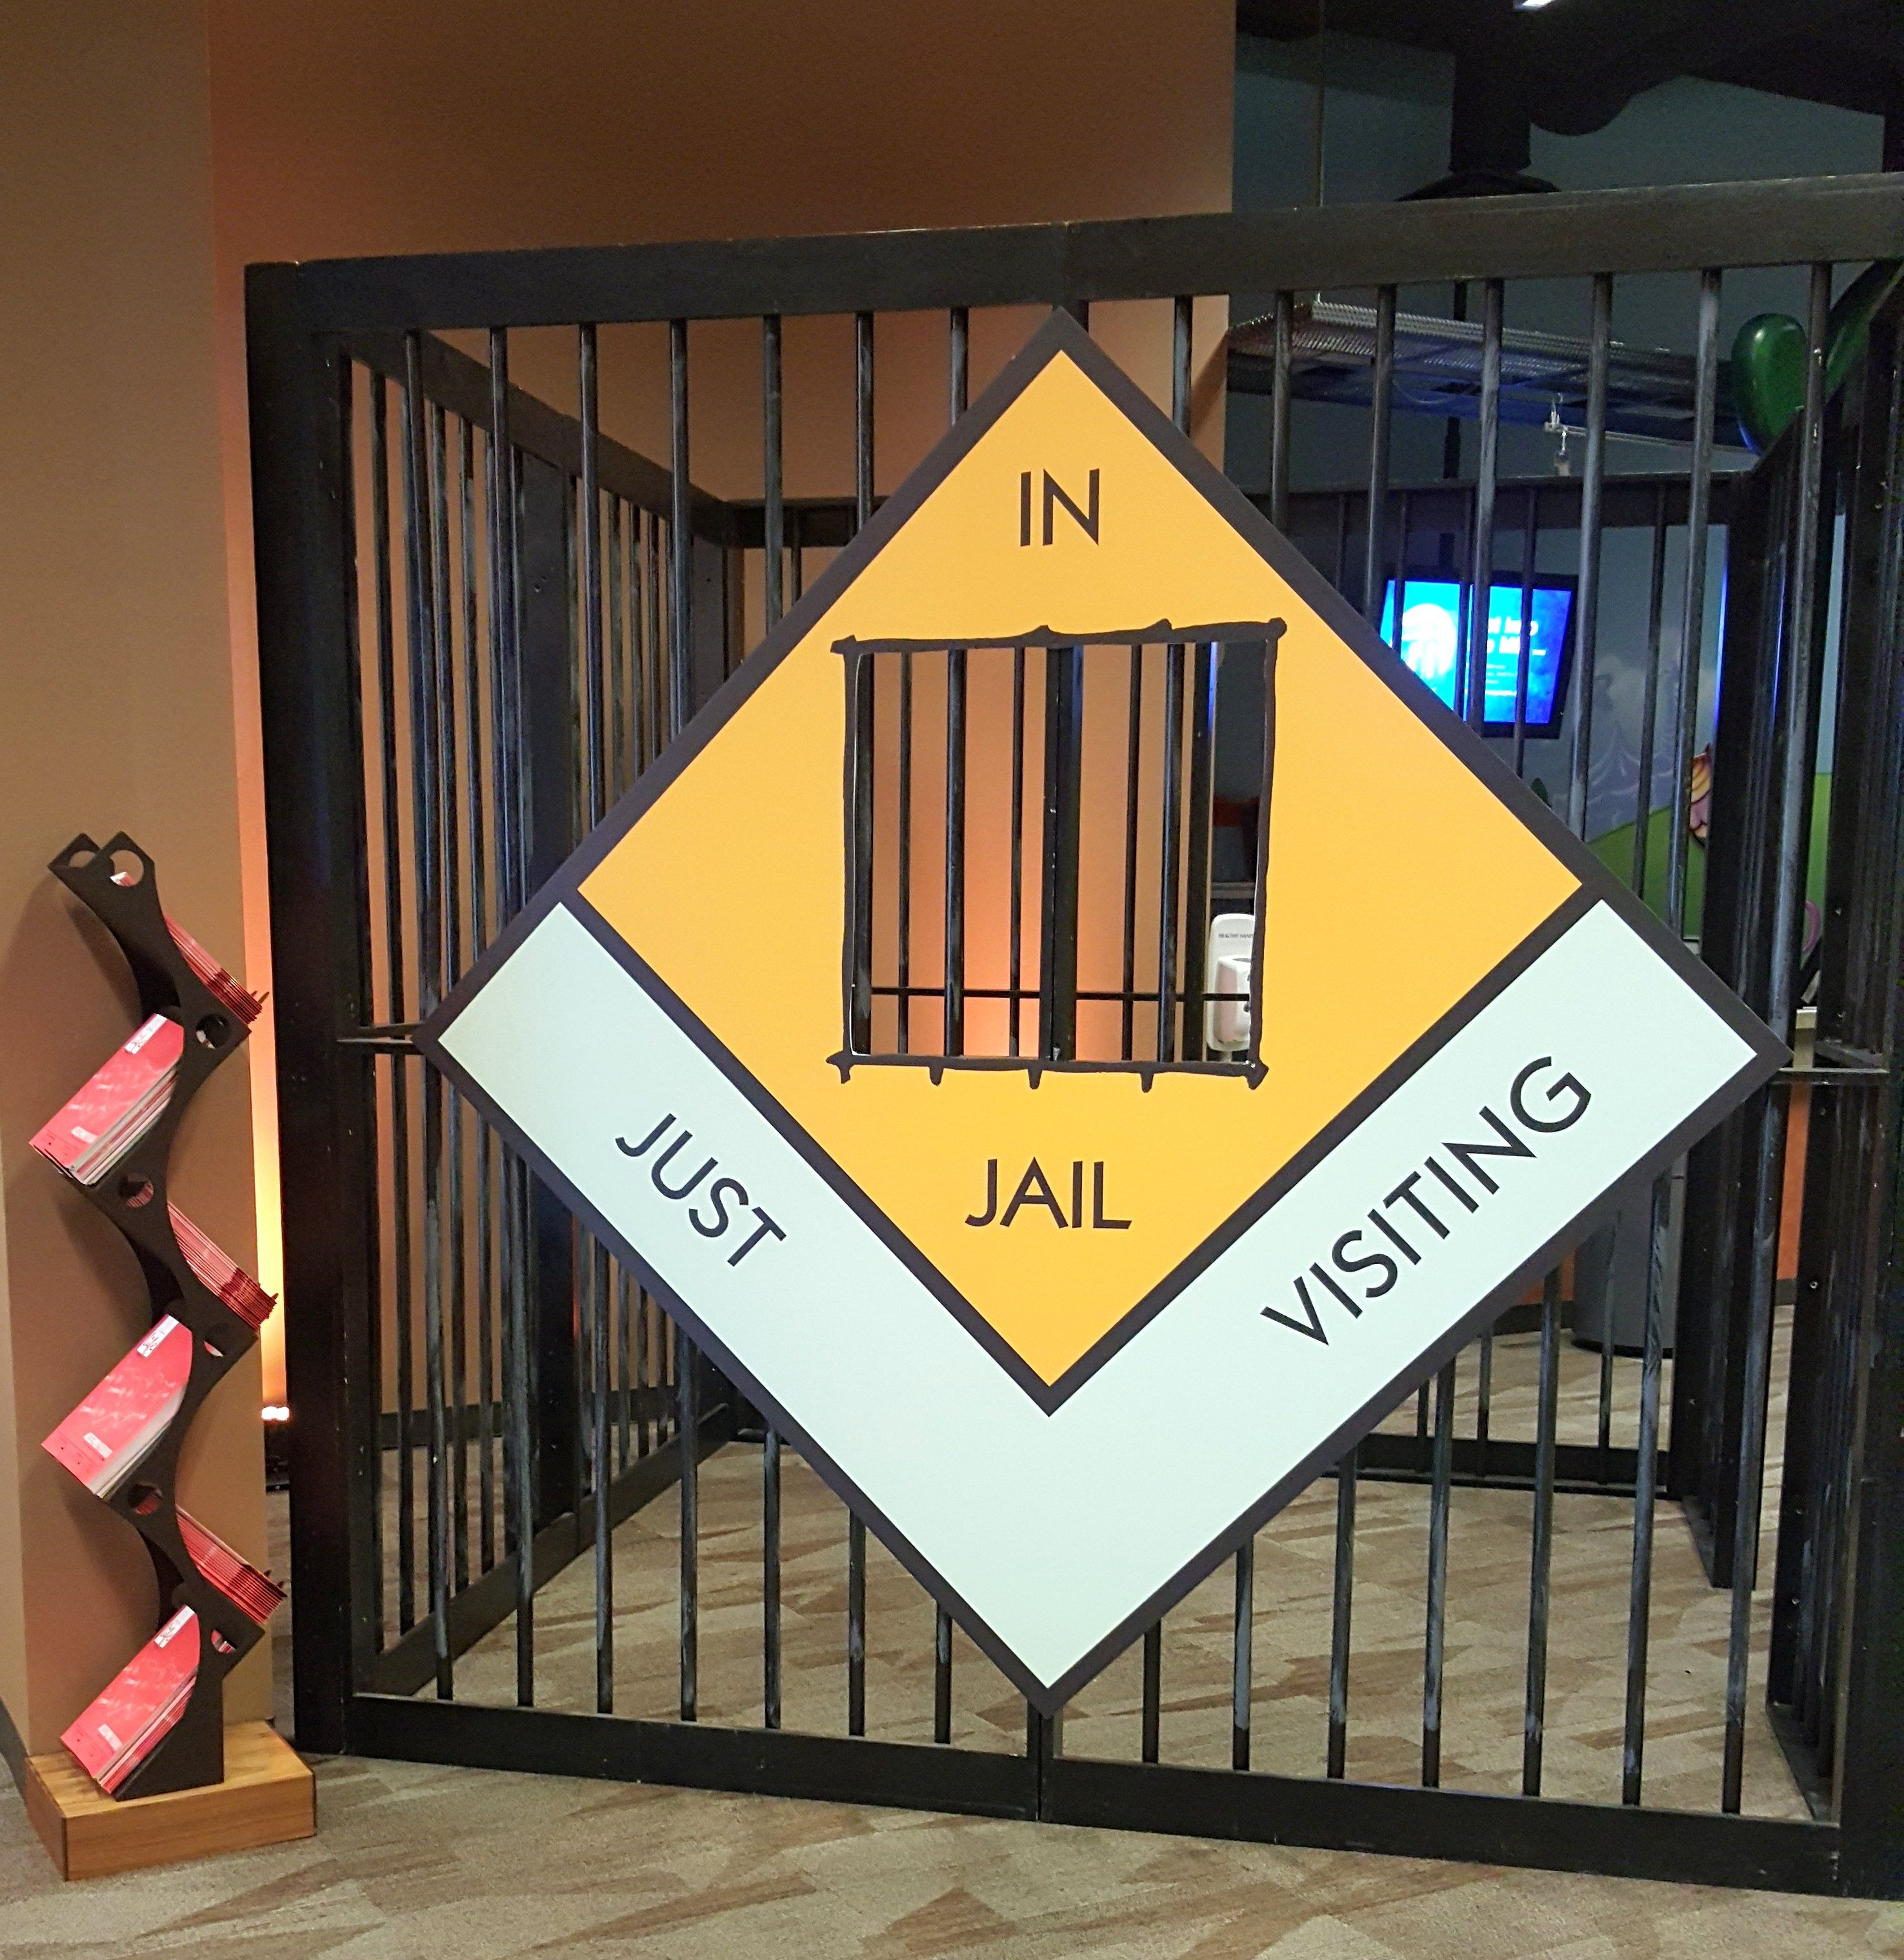 Sign with jail for Monopoly themed event. Monopoly game